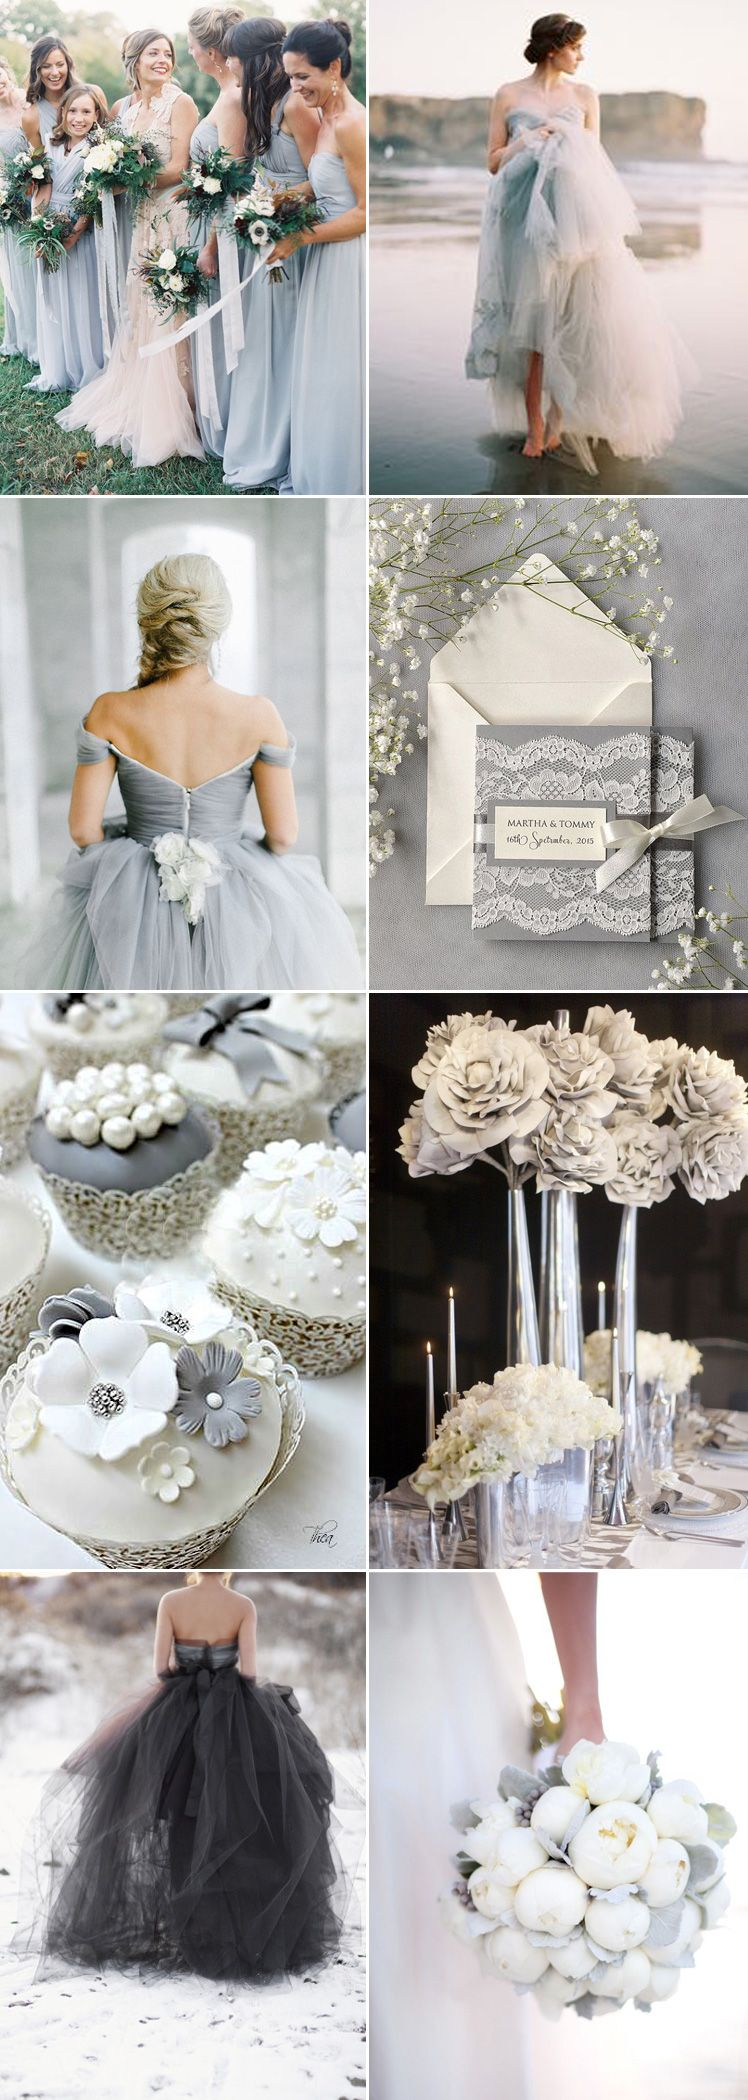 Fifty Shades of Grey For A Classy Wedding Day | Pinterest | Fifty ...